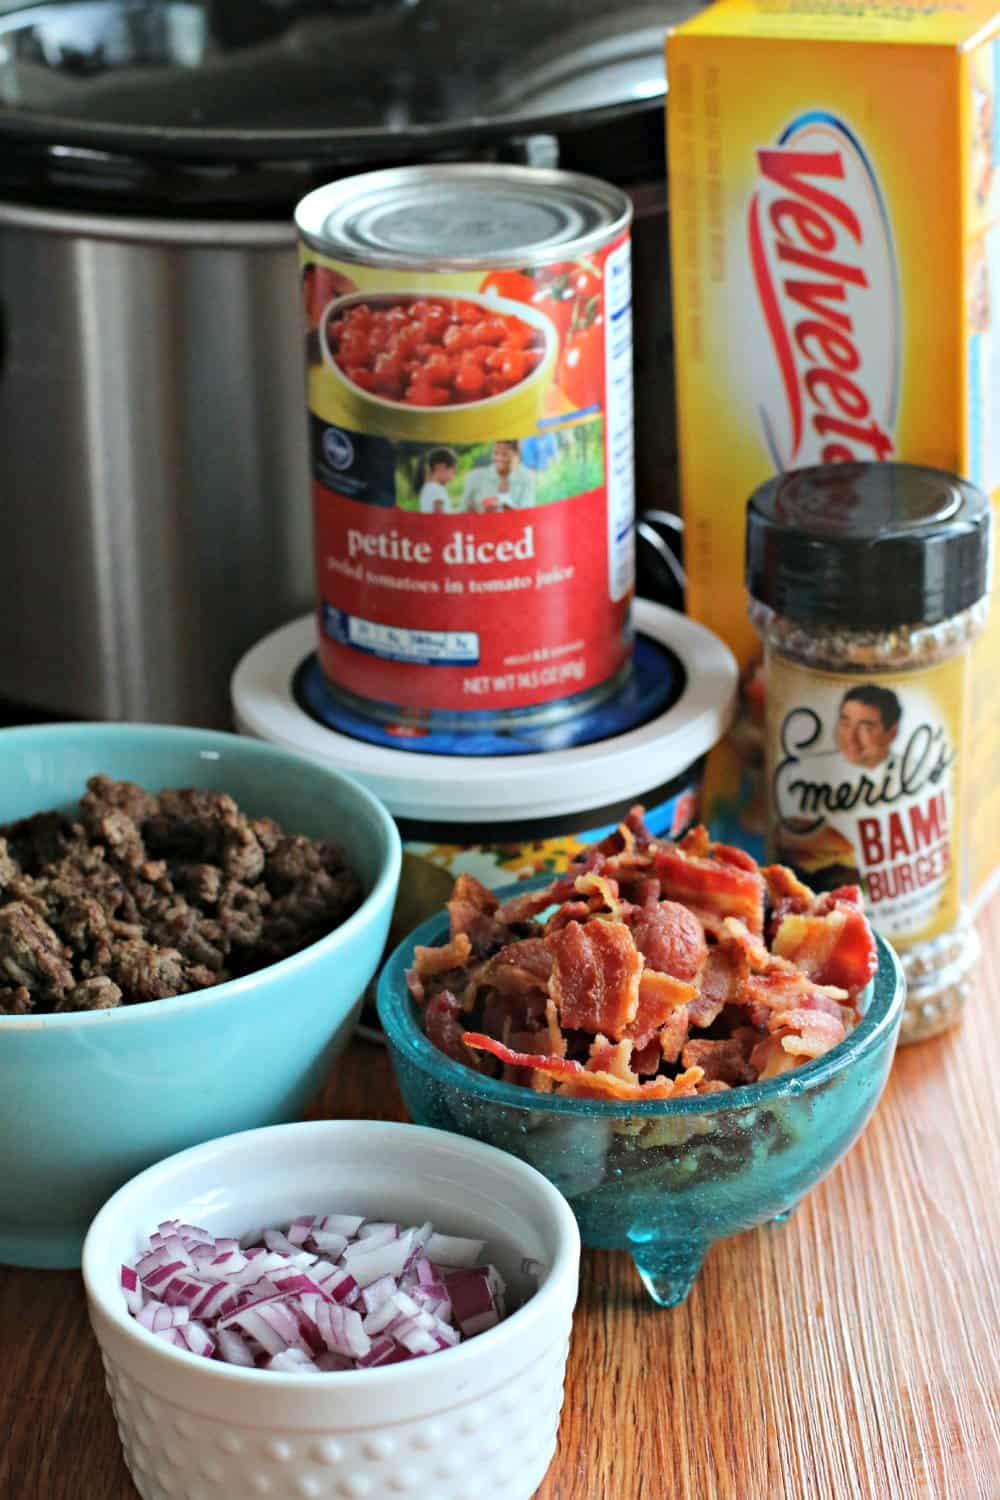 Slow Cooker Bacon Cheeseburger Dip ingredients in front of slow cooker